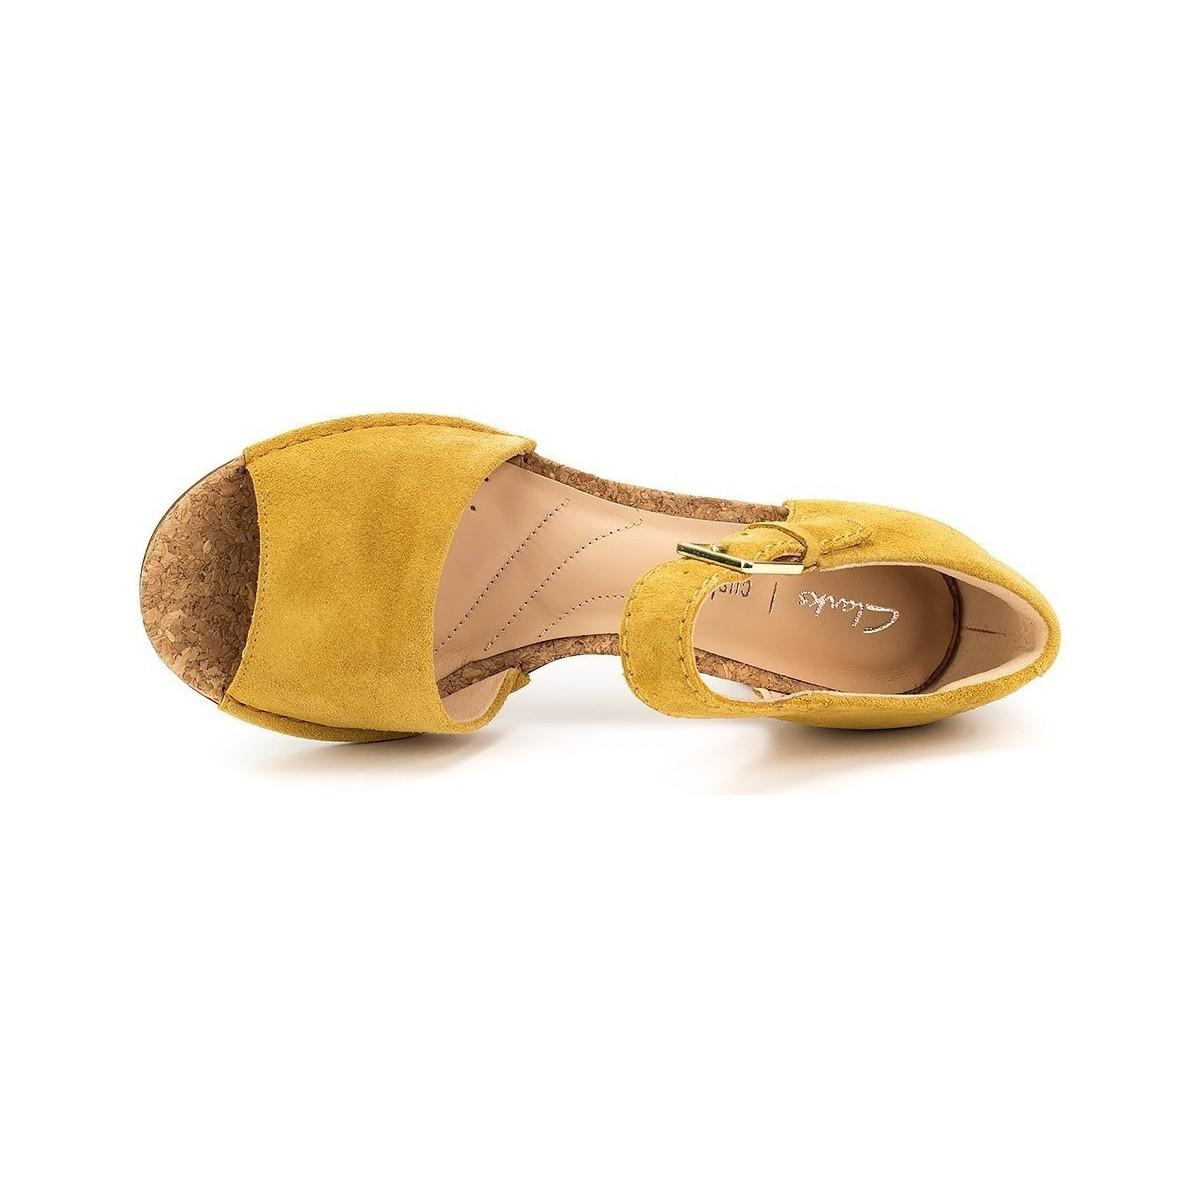 2e8445ac36ae Clarks Spiced Olivia Women s Sandals In Yellow in Yellow - Lyst